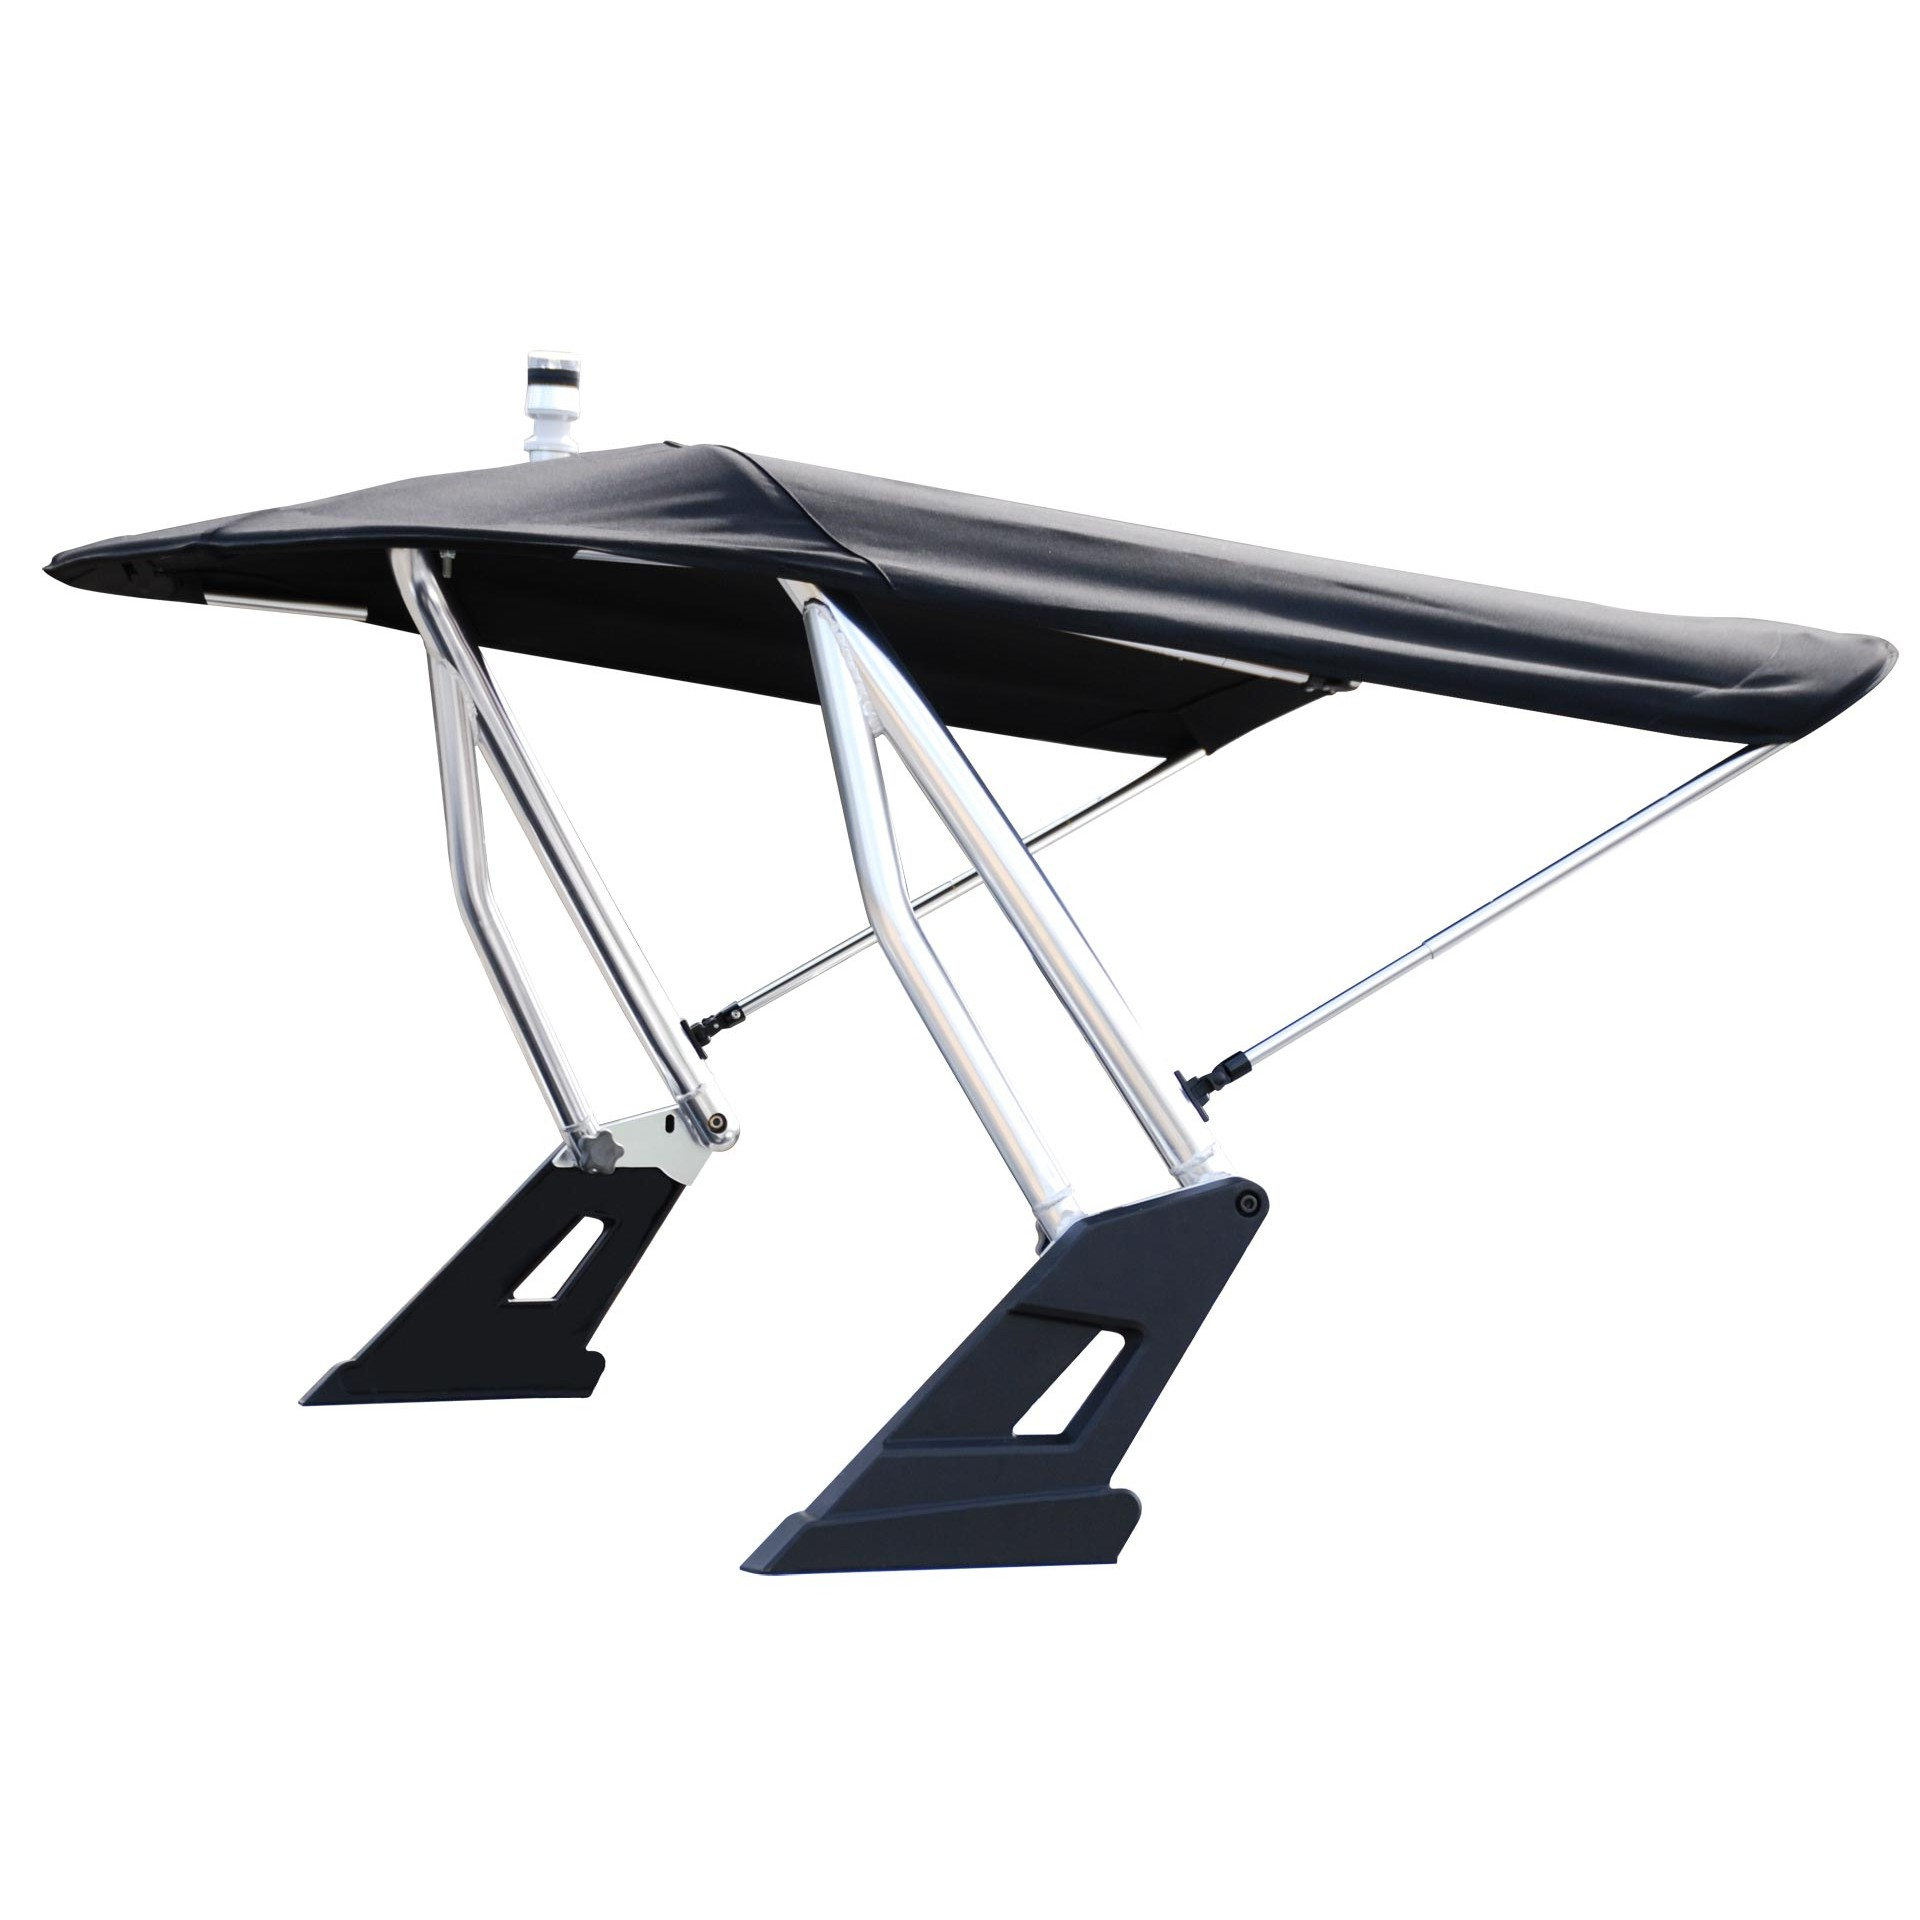 OVER THE TOP BIMINI - BLACK - HS-1 LARGE (226-244CM) MONSTER TOWER 2018